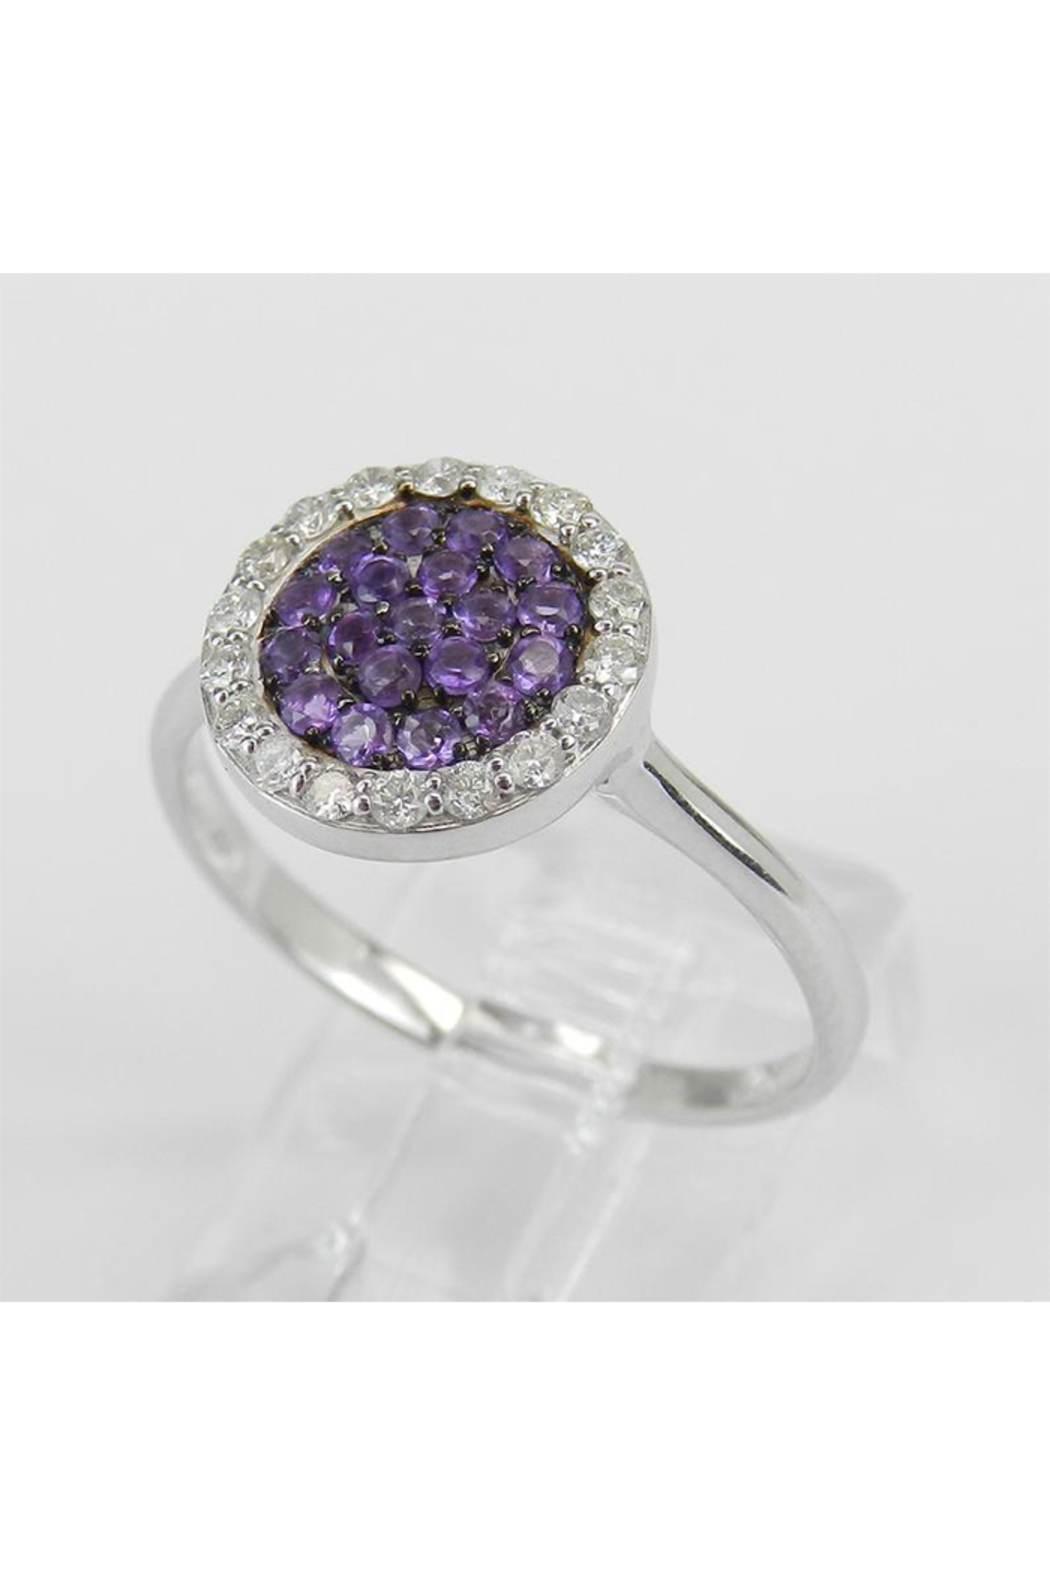 Margolin & Co 14K White Gold Diamond and Amethyst Cluster Promise Cocktail Ring Size 7.25 - Side Cropped Image